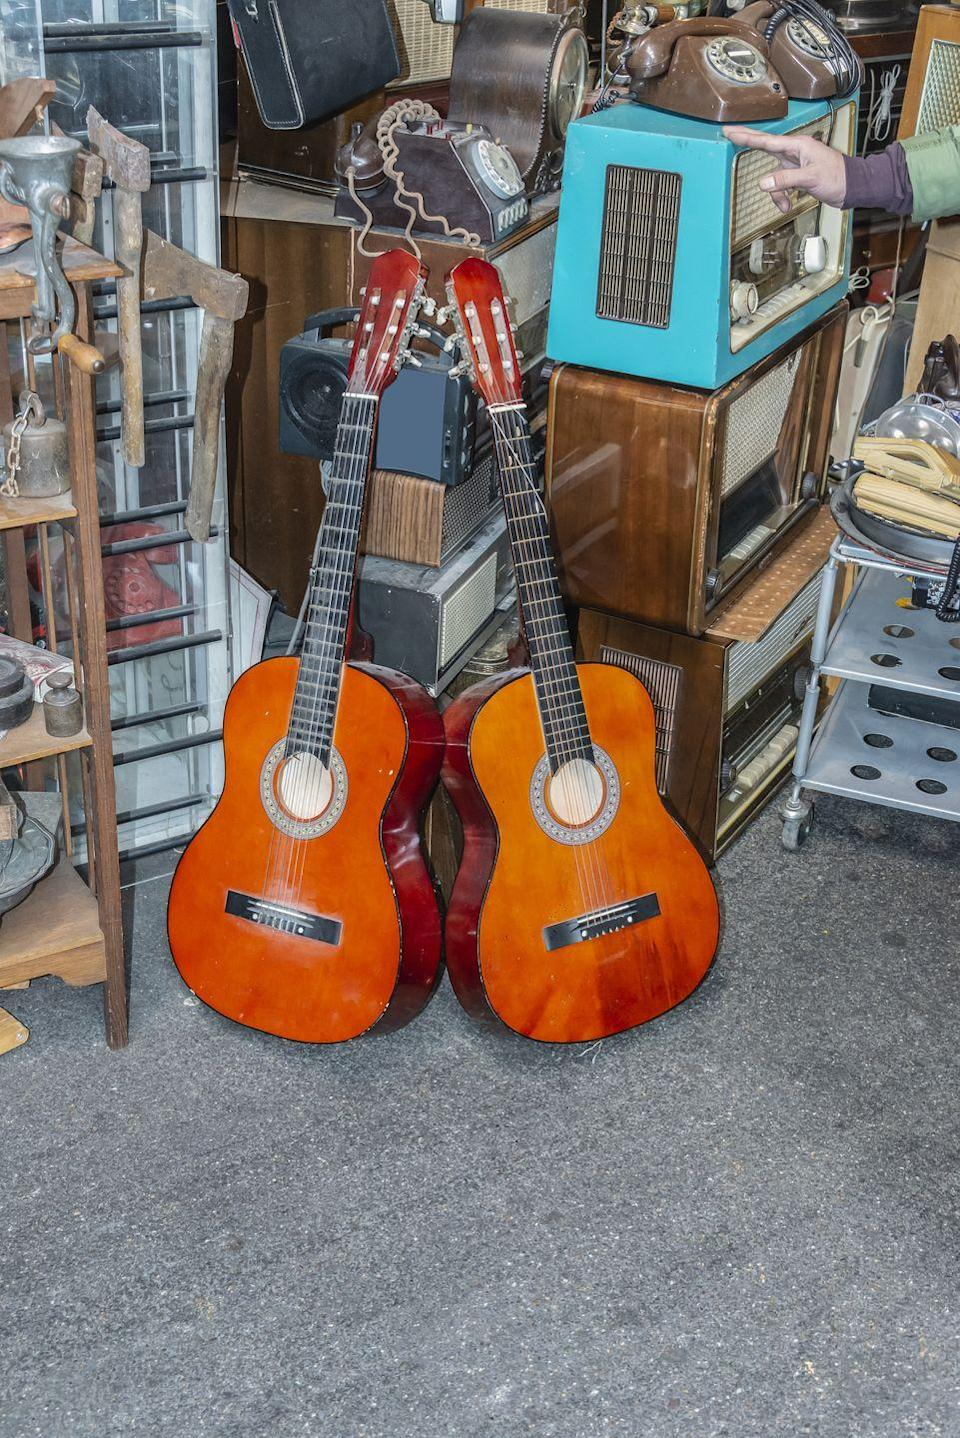 """<p>Whether or not you can play a lick, buying that old axe sitting in the corner of the garage sale can bring big returns. Used guitars from esteemed brands including Martin, Taylor, and Gibson can sell for thousands on sites like <a href=""""https://reverb.com/price-guide/acoustic-guitars"""" rel=""""nofollow noopener"""" target=""""_blank"""" data-ylk=""""slk:Reverb"""" class=""""link rapid-noclick-resp"""">Reverb</a>.</p>"""